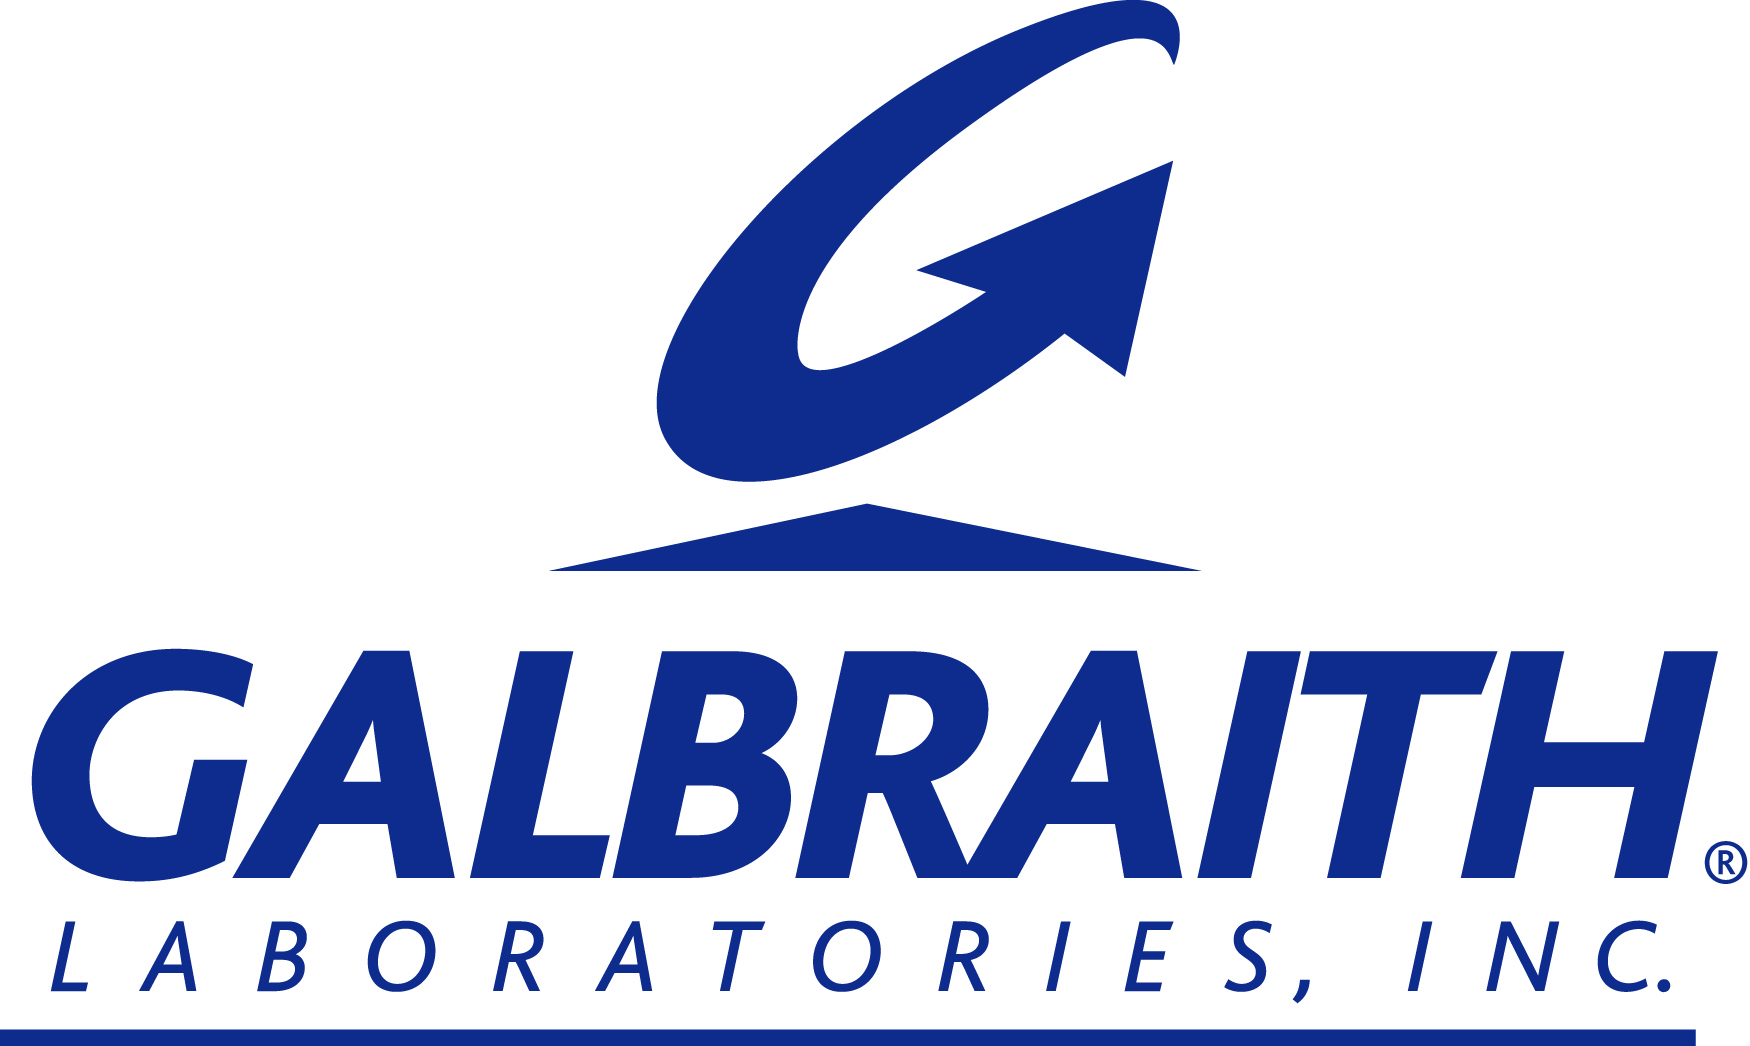 Galbraith Laboratories, Inc. - Galbraith® is a contract analytical laboratory with over 60 years experience that provides a fu